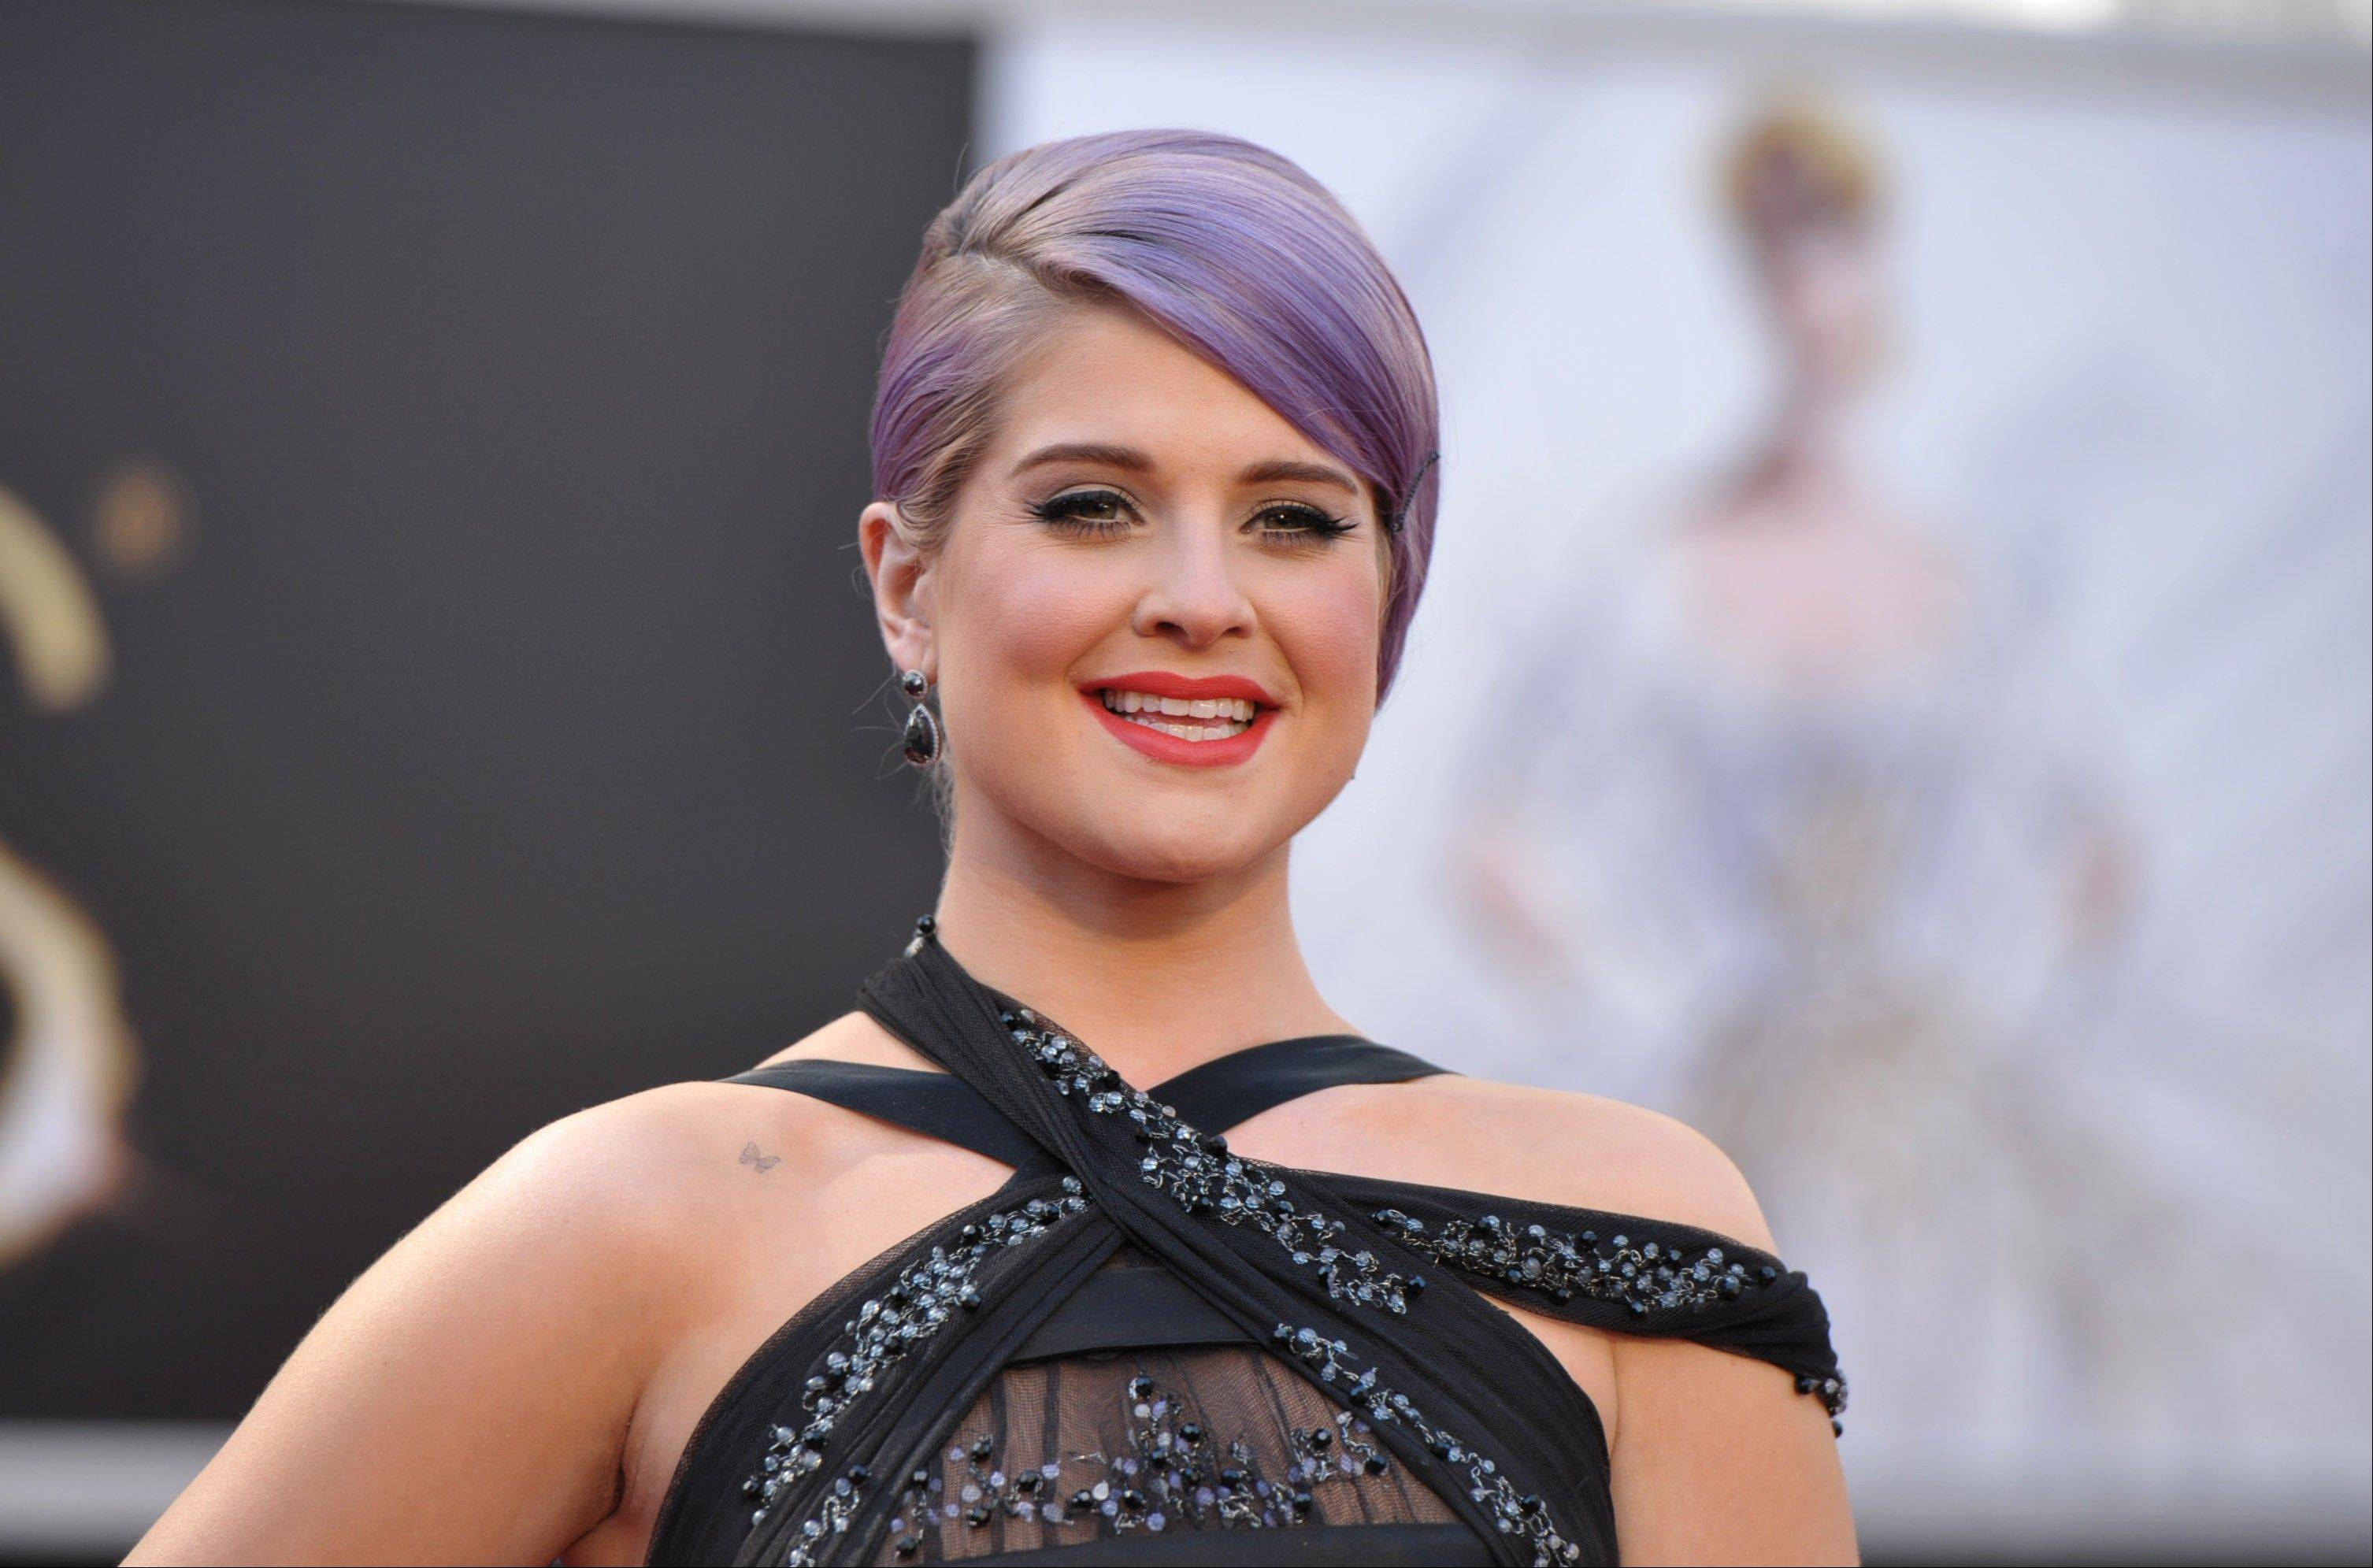 TV personality Kelly Osbourne was hospitalized after fainting on the set of E!�s �Fashion Police.� A spokeswoman for Osbourne told the cable network Thursday that the 28-year-old TV personality is awake, alert and in stable condition.